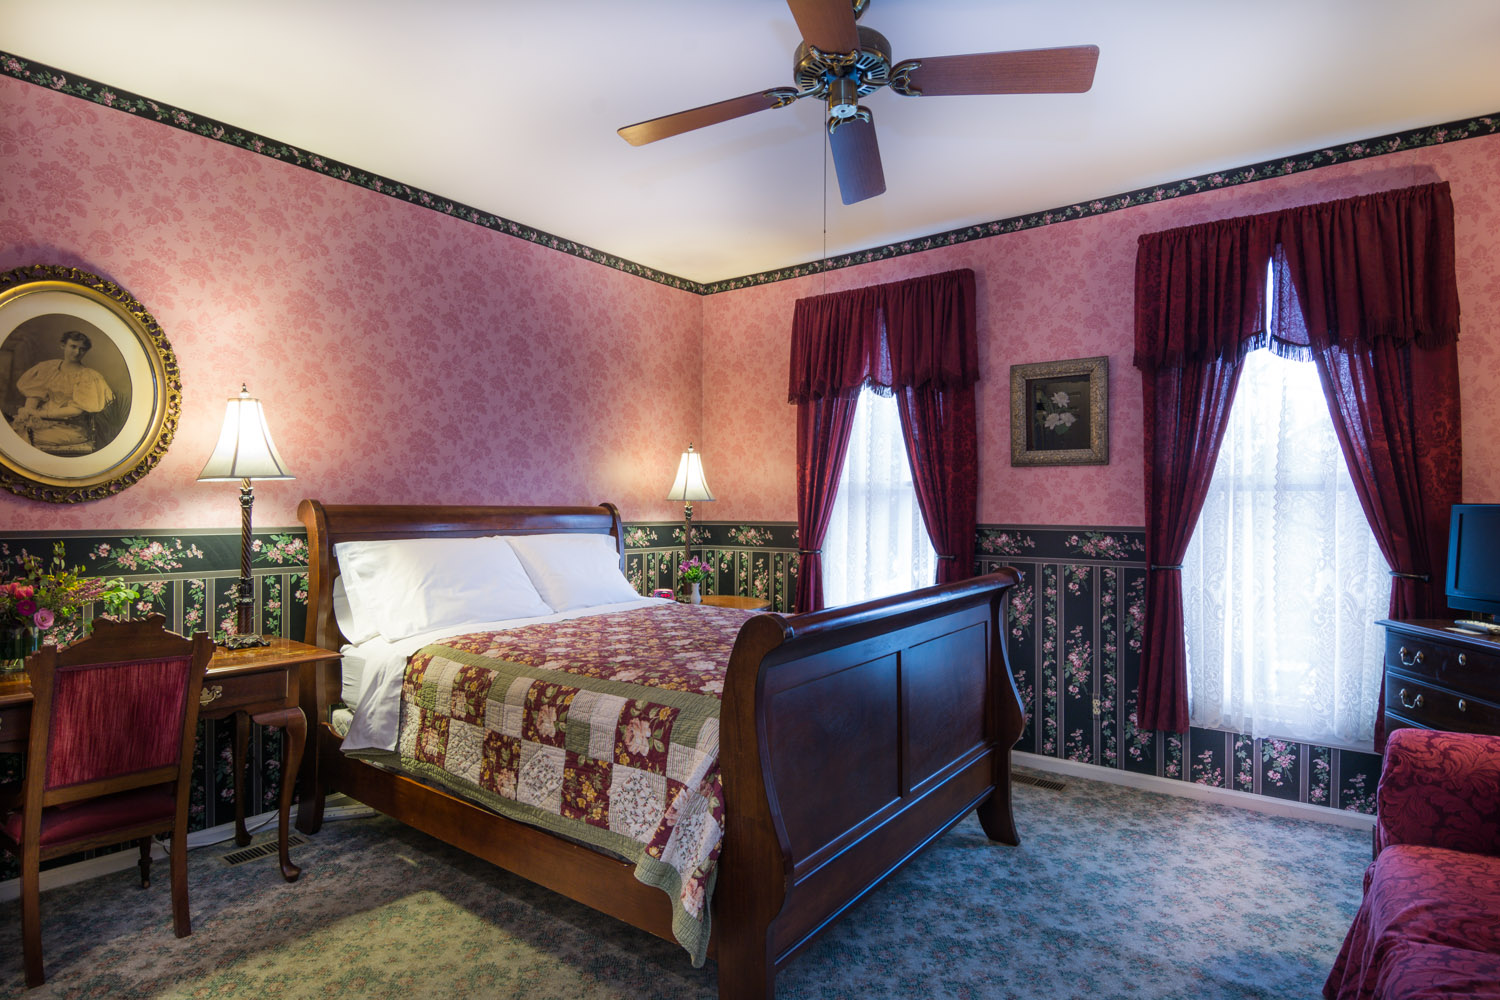 Harrison-House-Bed-and-Breakfast-Columbus-Ohio-Room-4-1